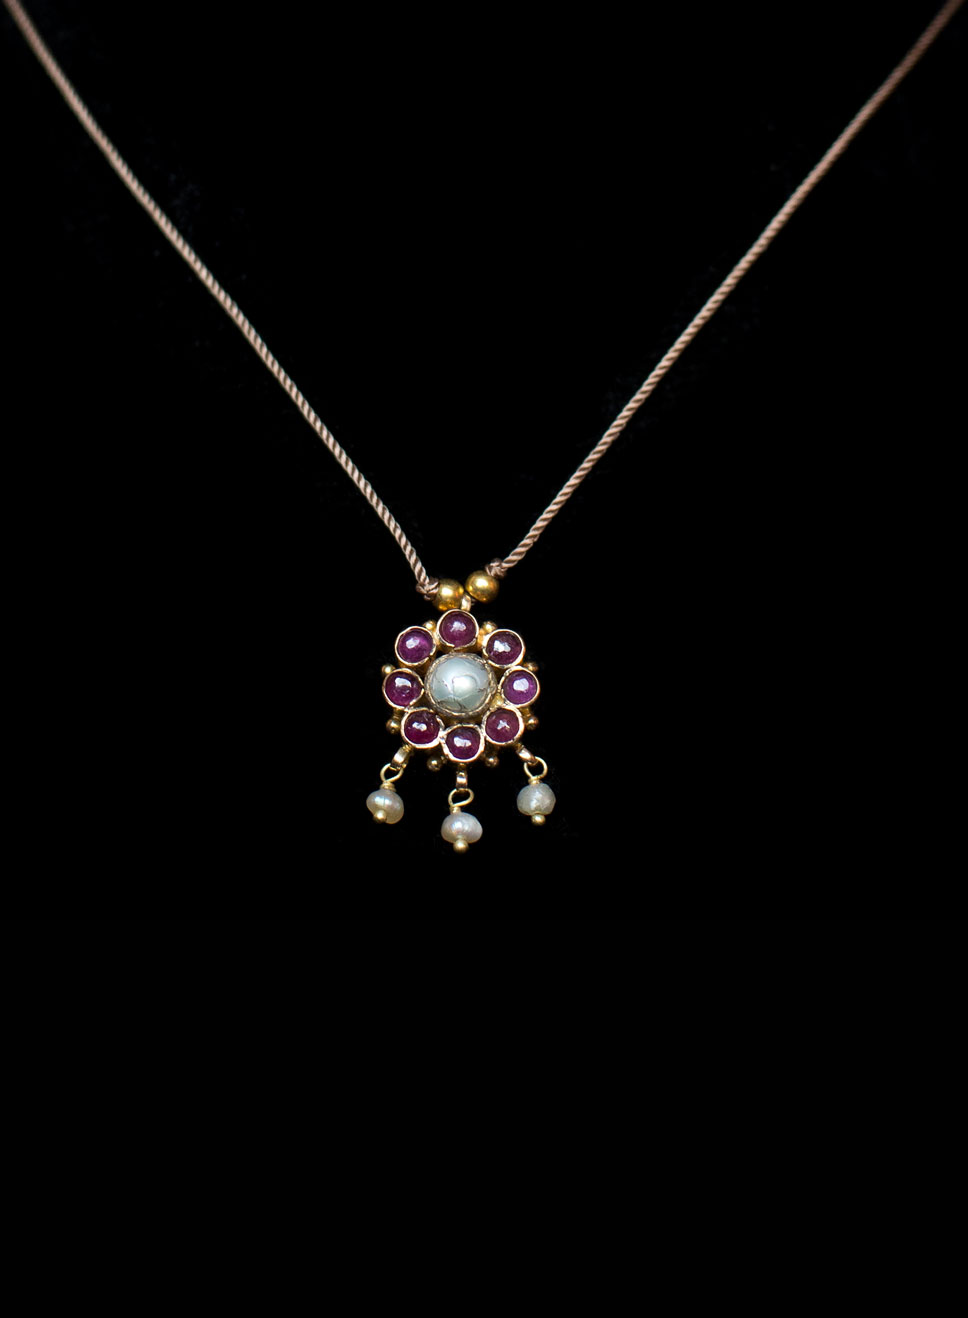 Ruby flower pendant pearl drops, 22ct gold with a silk thread. Necklace length- 48cm. Pendant size- 2cm by 2cm.